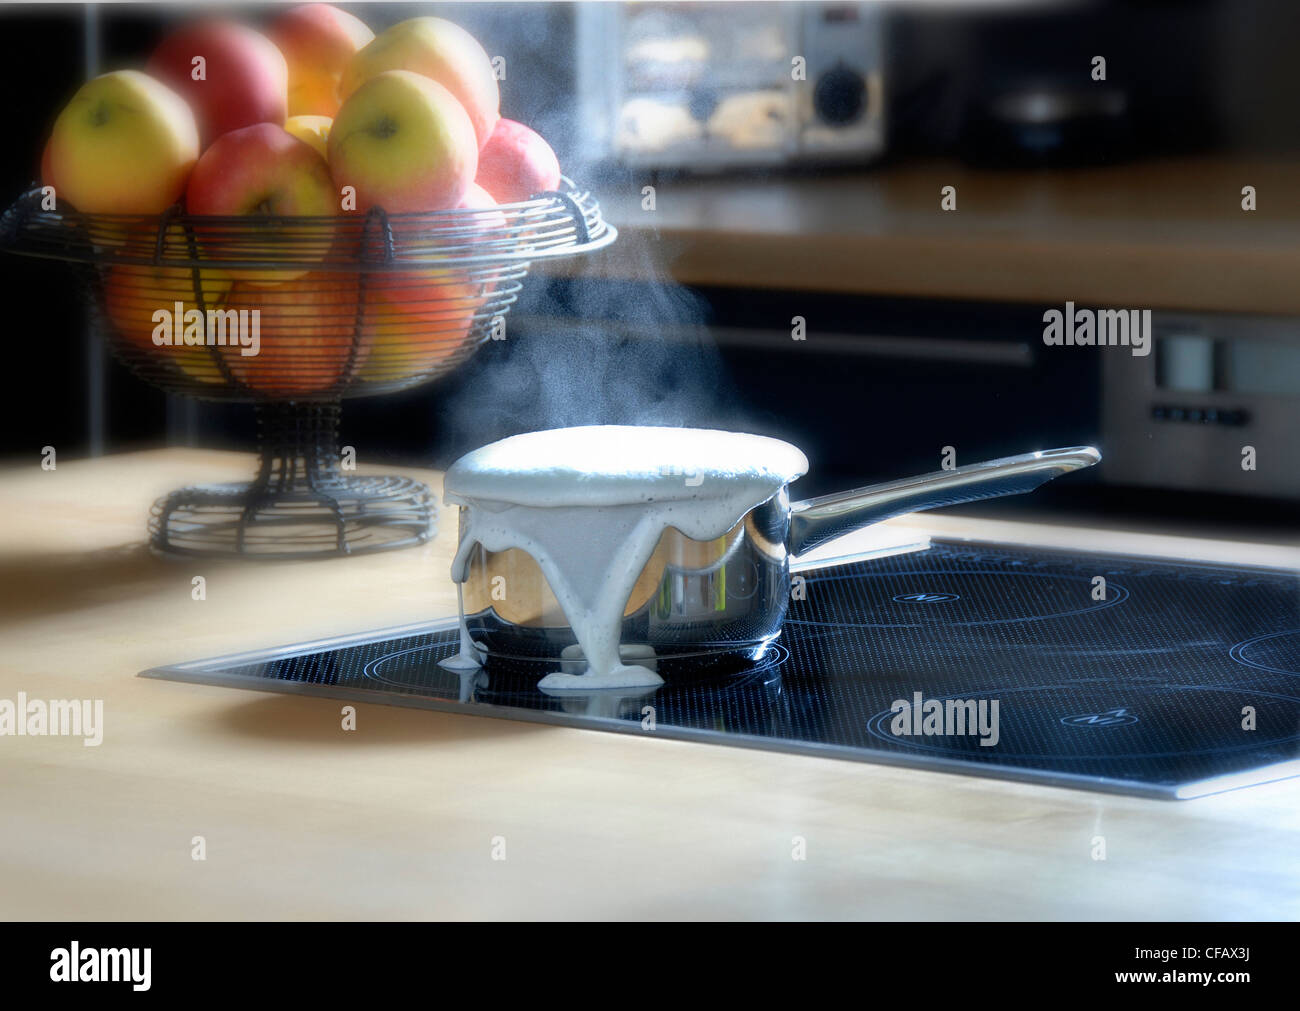 cook, cooker, cleaning, milk, boil over, household, overboil